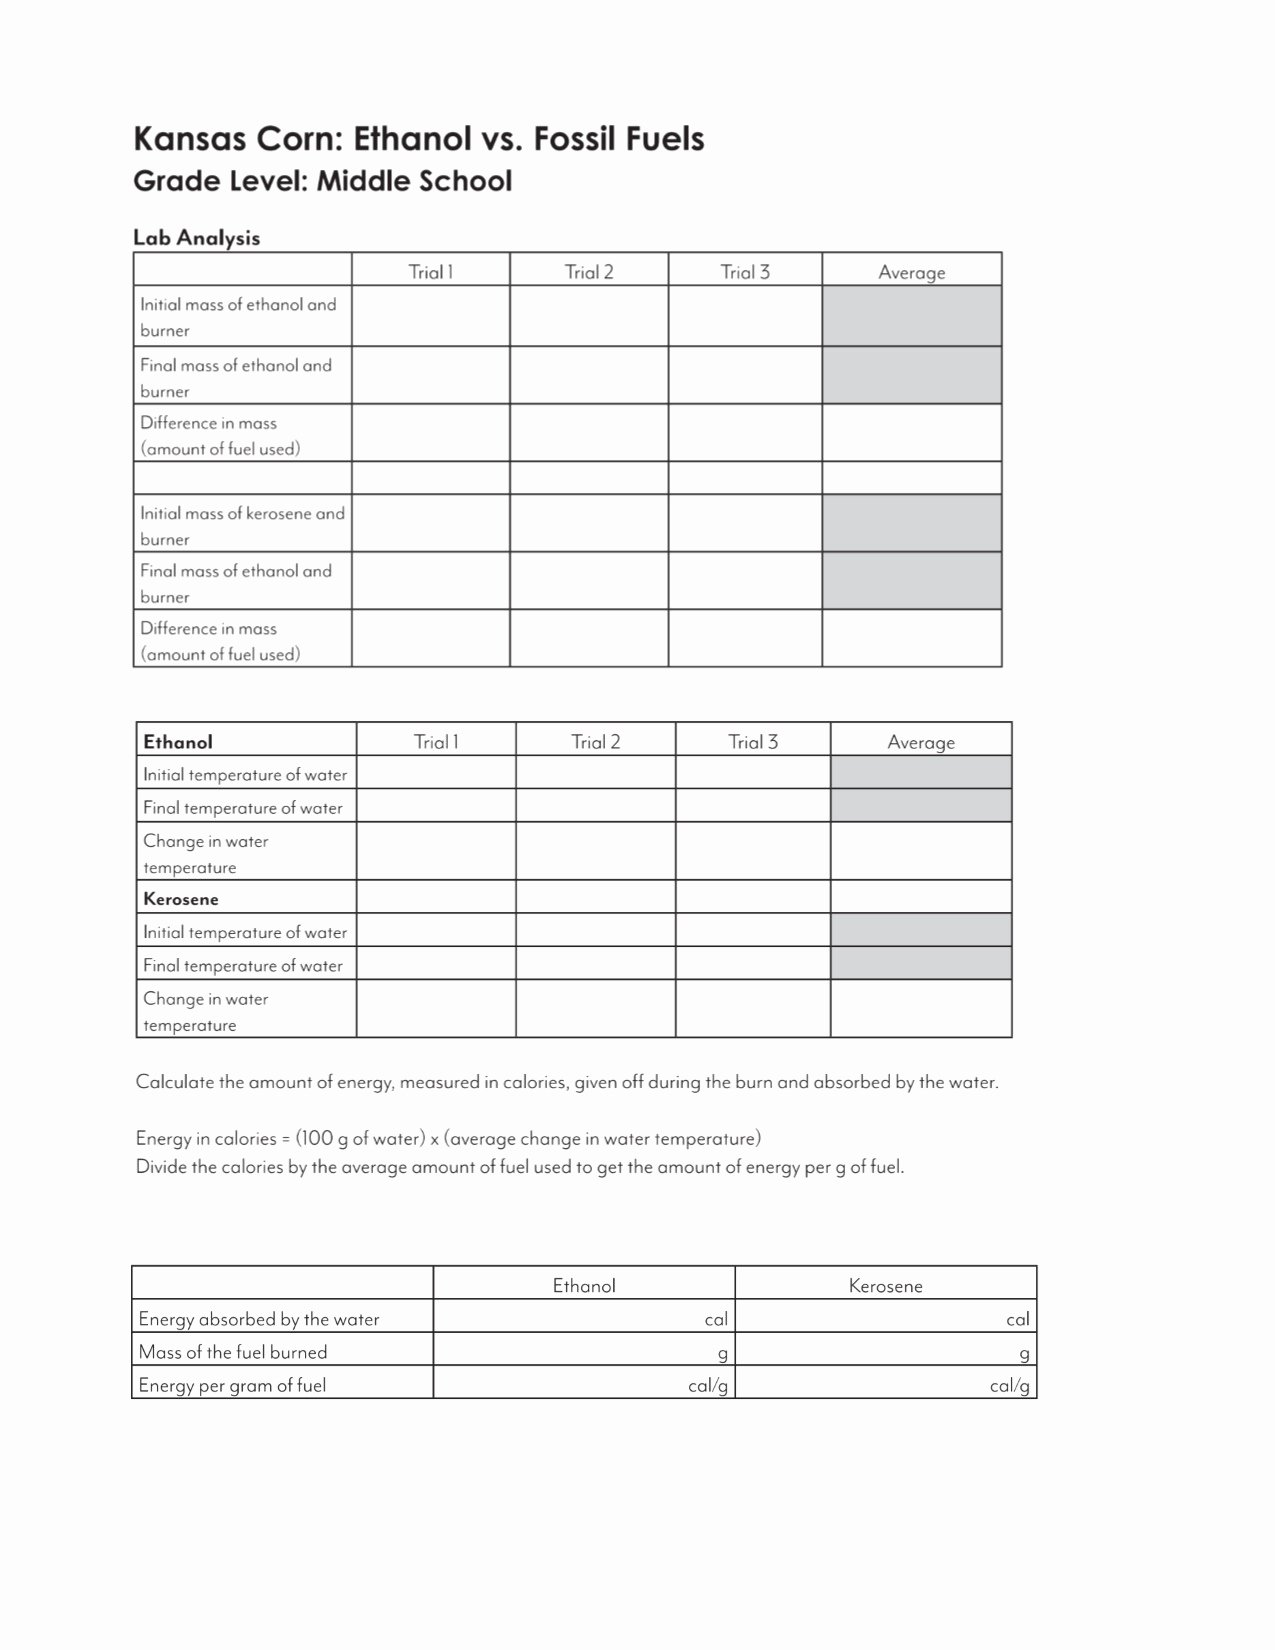 Fossil Fuels Worksheet Middle School top Ethanol Vs Fossil Fuels